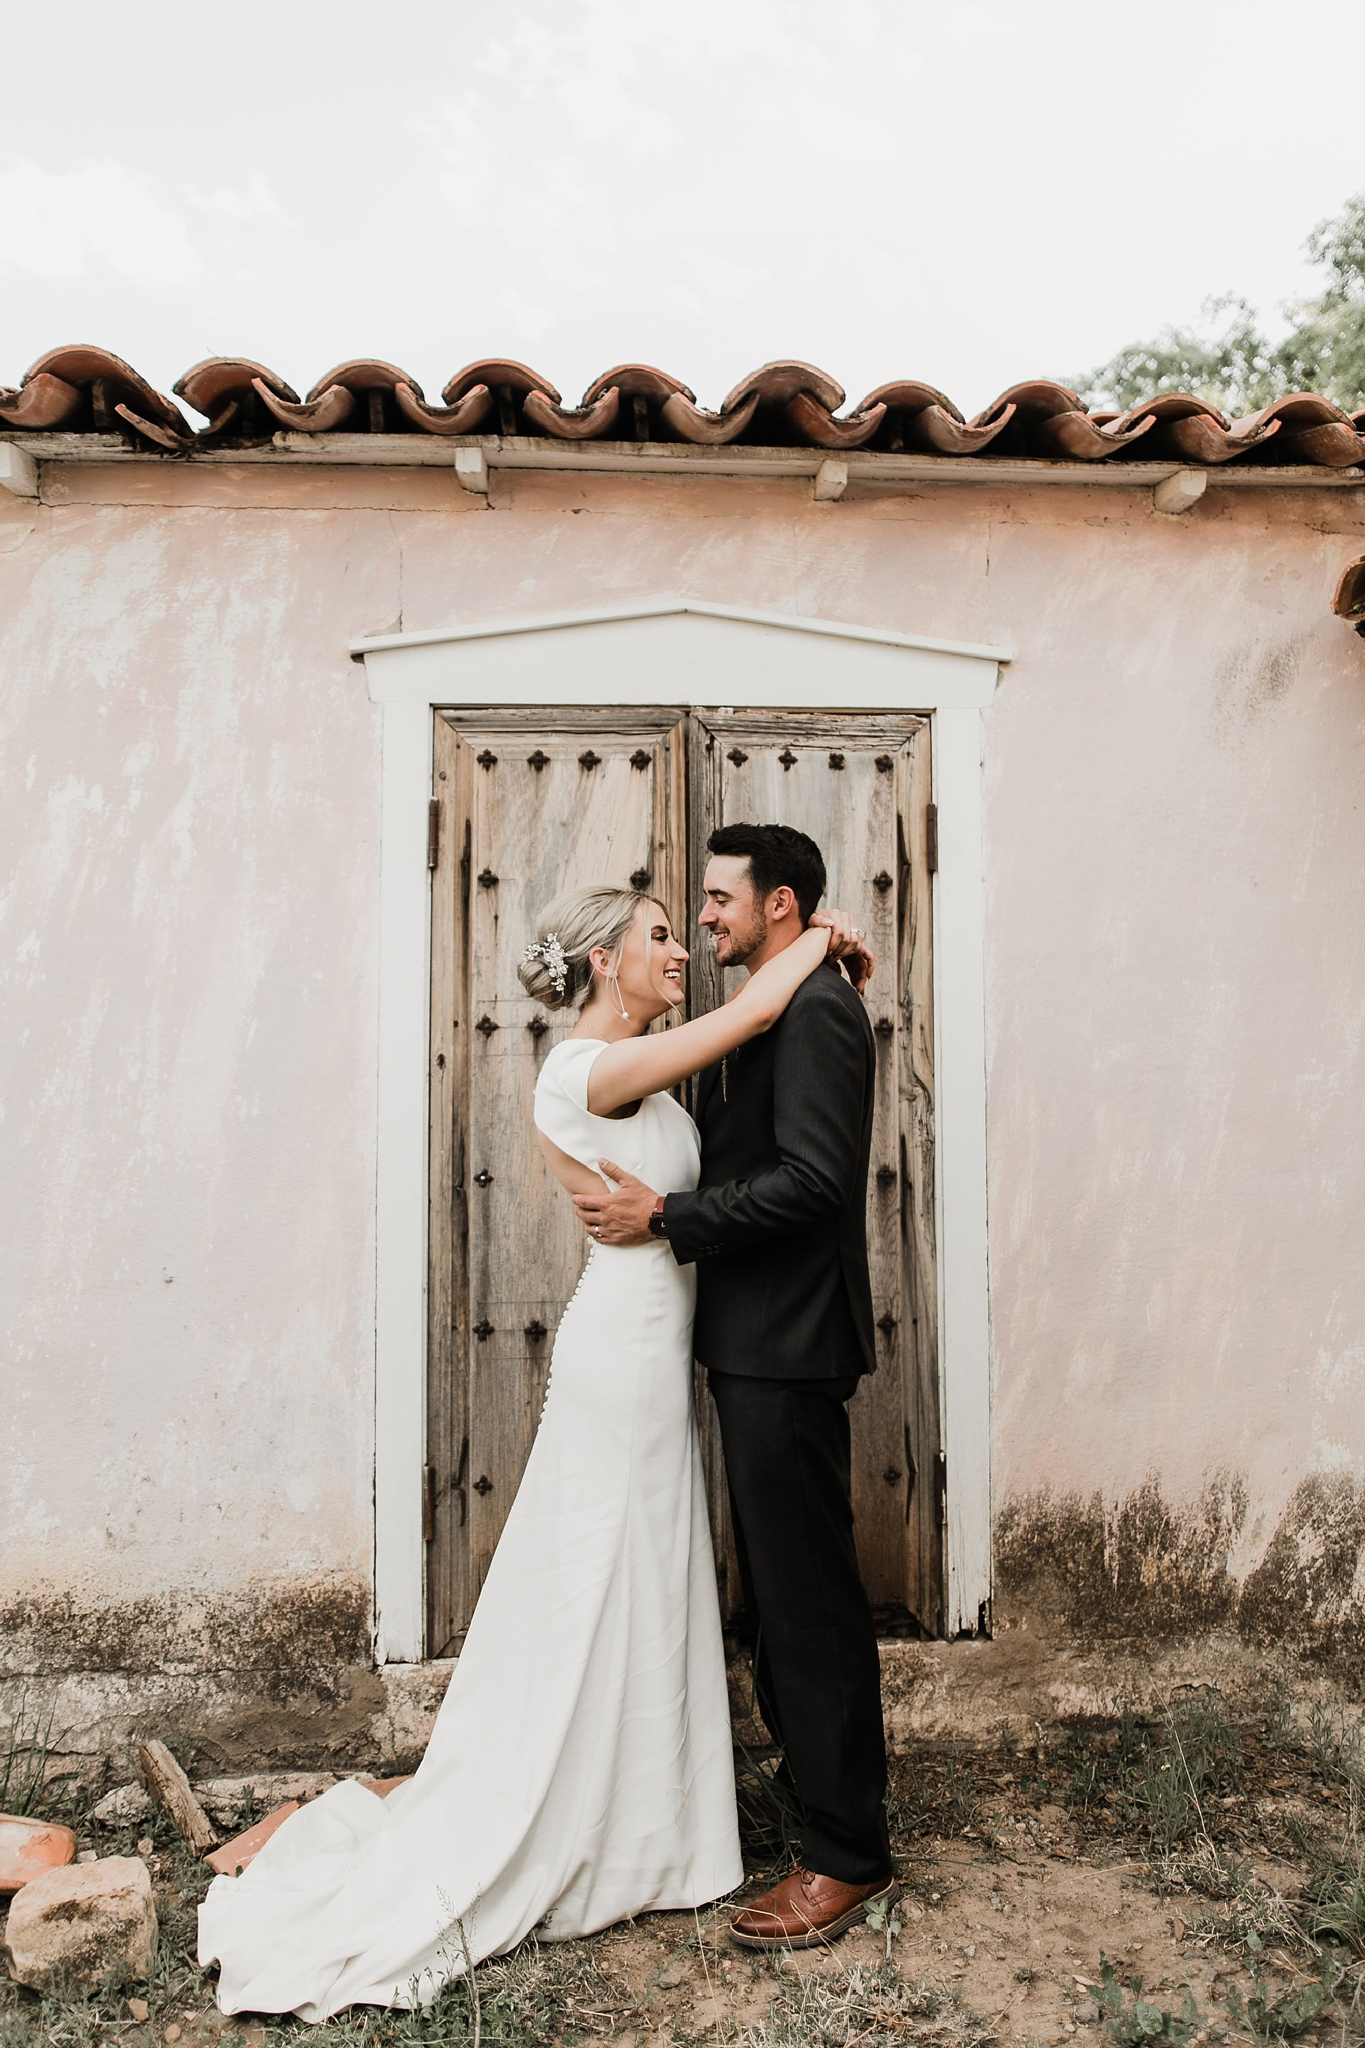 Alicia+lucia+photography+-+albuquerque+wedding+photographer+-+santa+fe+wedding+photography+-+new+mexico+wedding+photographer+-+new+mexico+wedding+-+ruidoso+wedding+-+southern+new+mexico+wedding+-+san+patricio+wedding+-+spring+wedding_0117.jpg